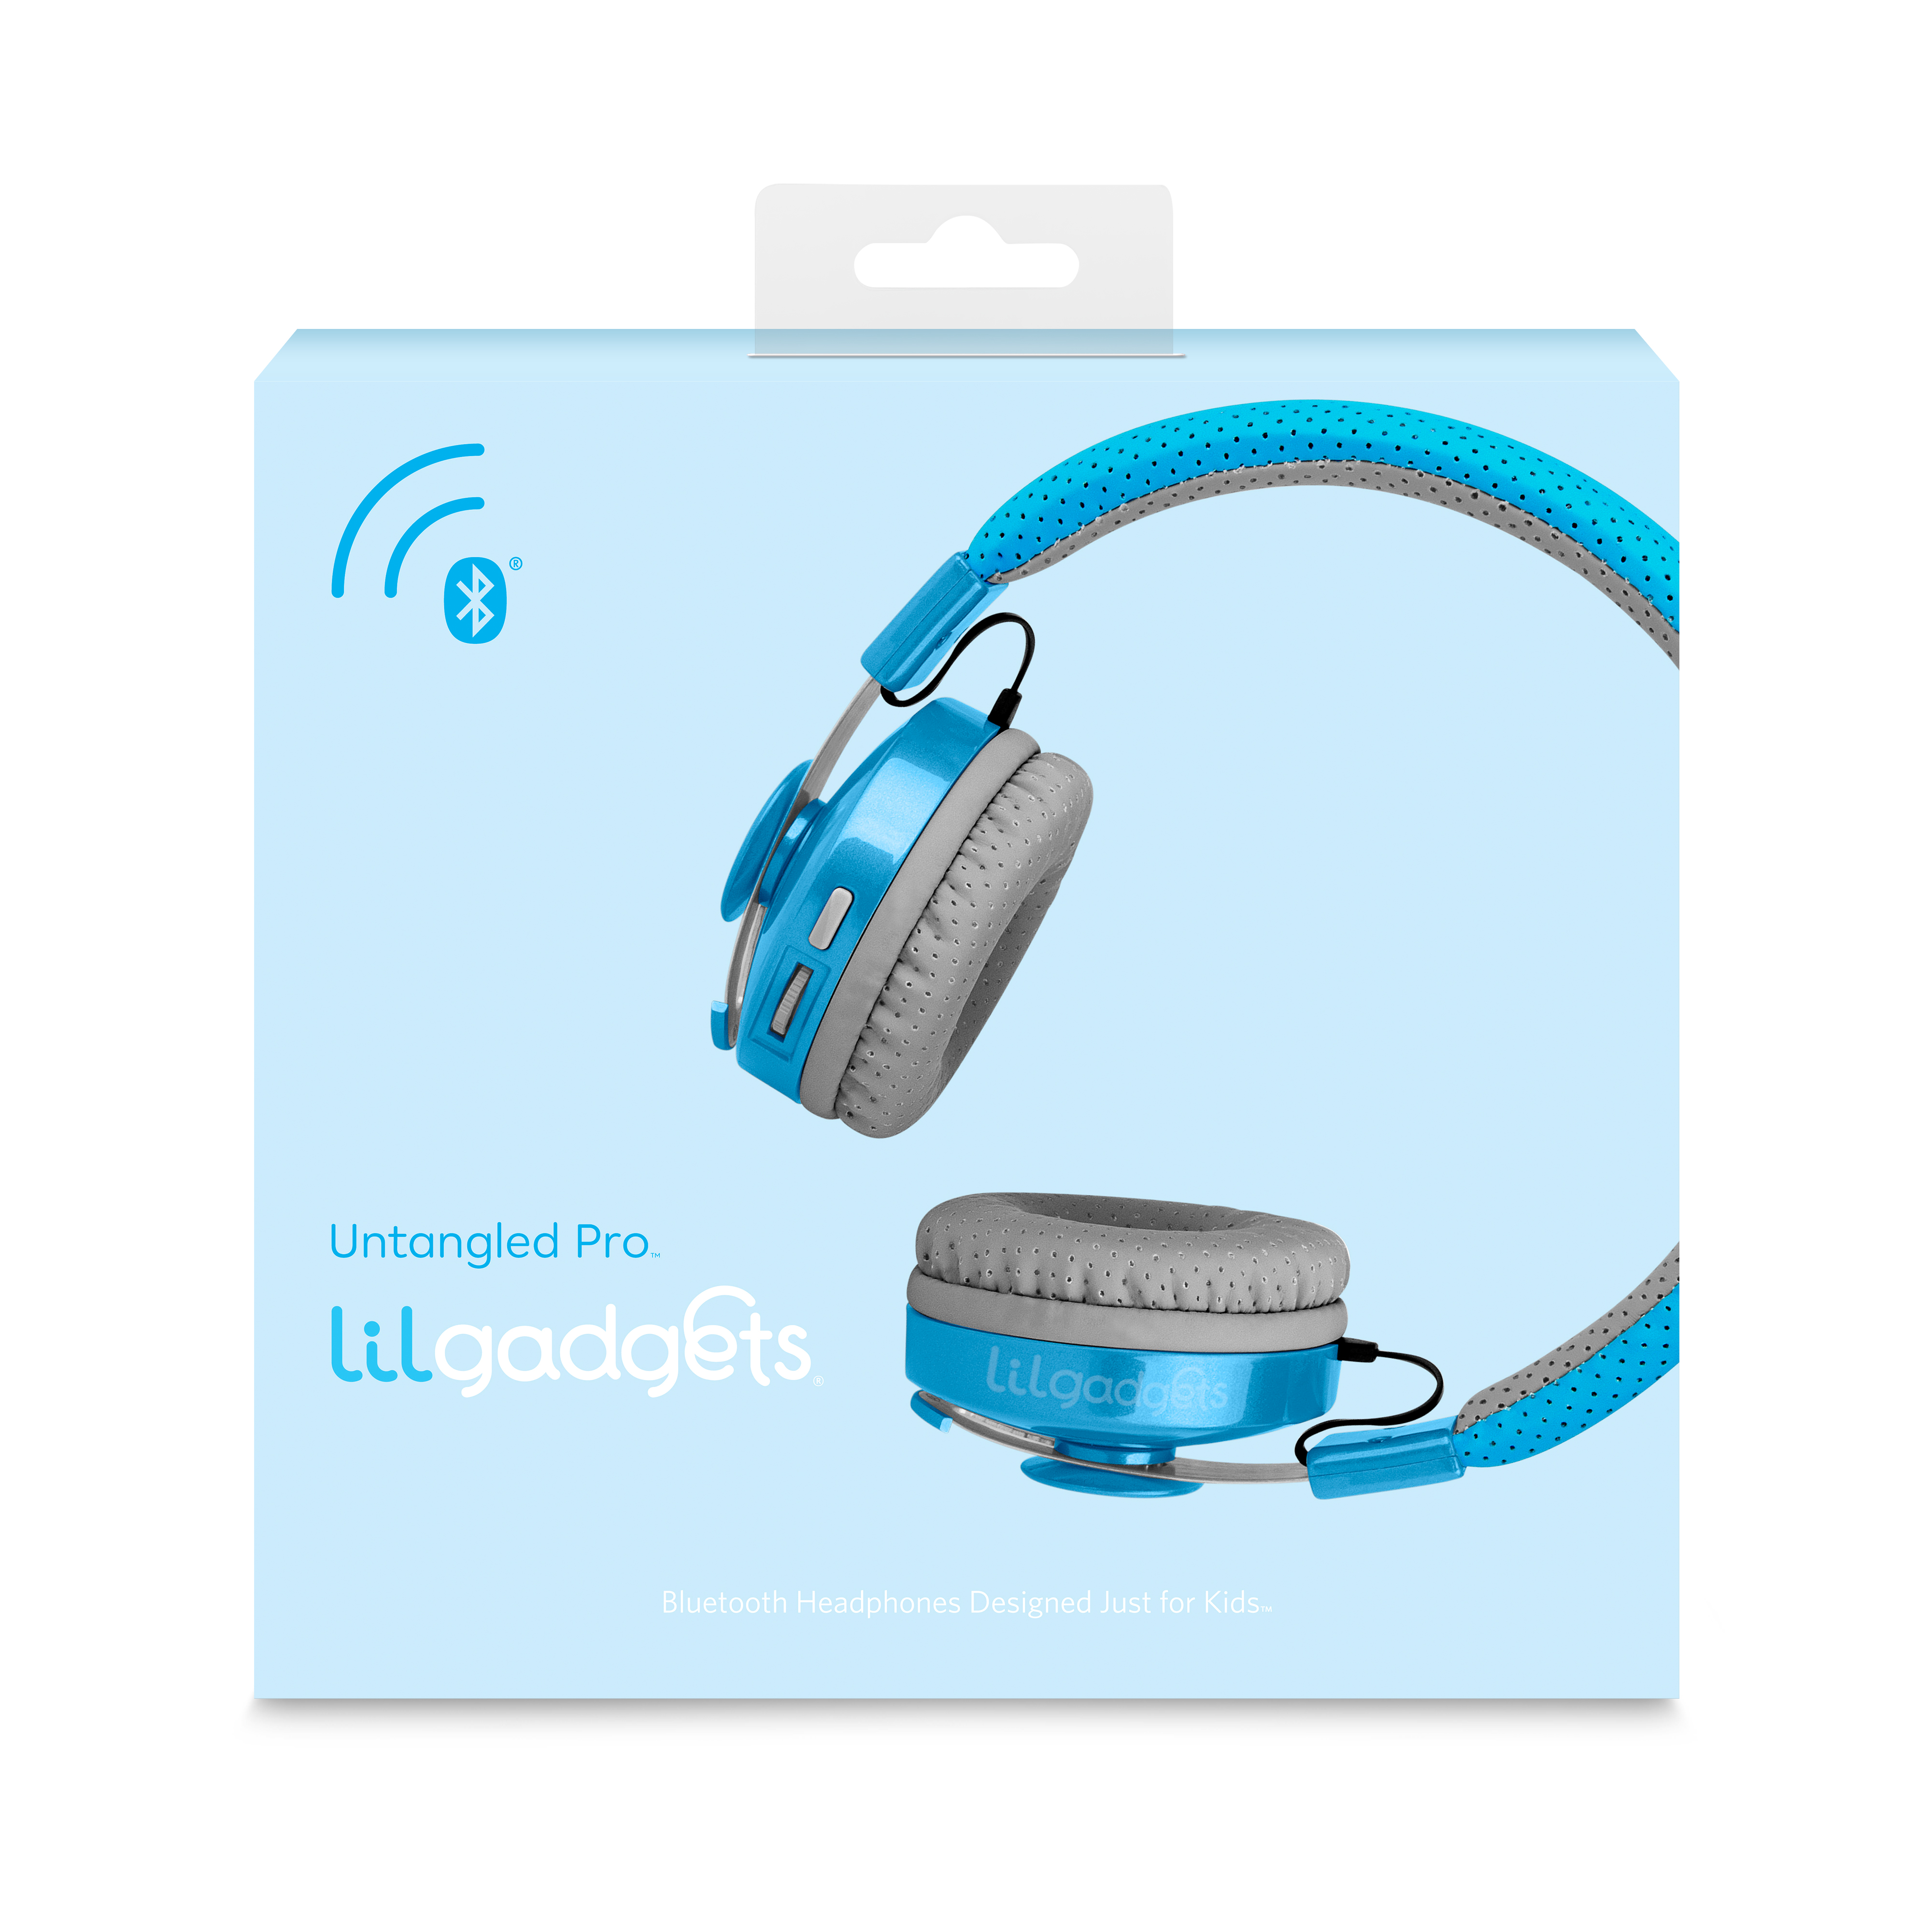 LilGadgets Untangled Pro Premium Children's Bluetooth Wireless Headphones with SharePort, Assorted Colors